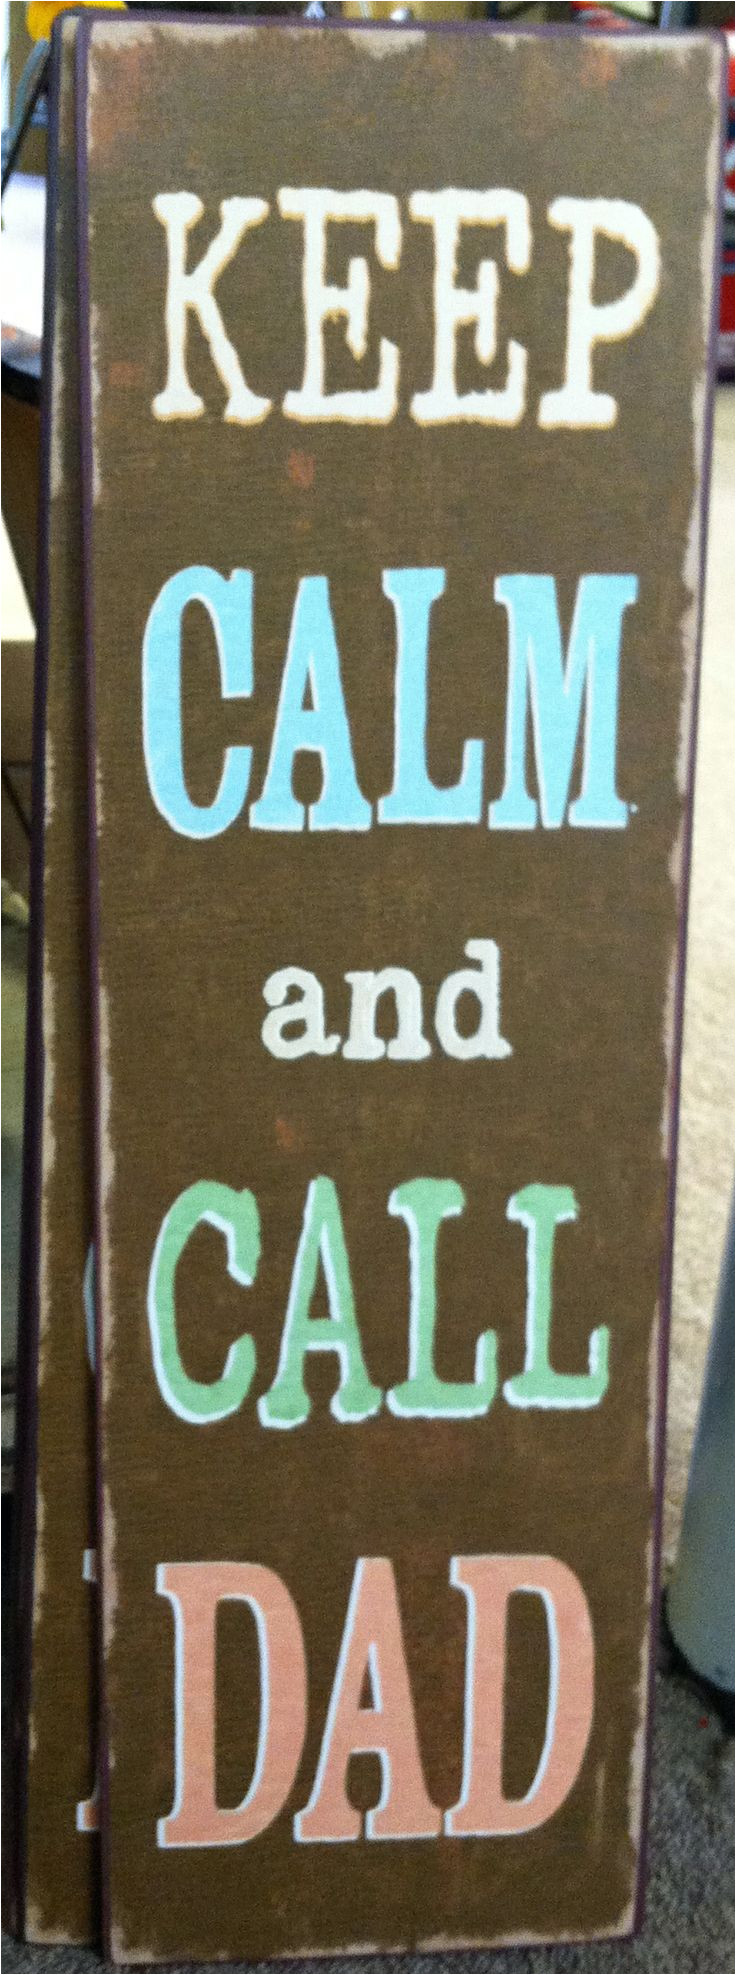 keep calm and call dad fathers day find at discount furniture outlet in richfield